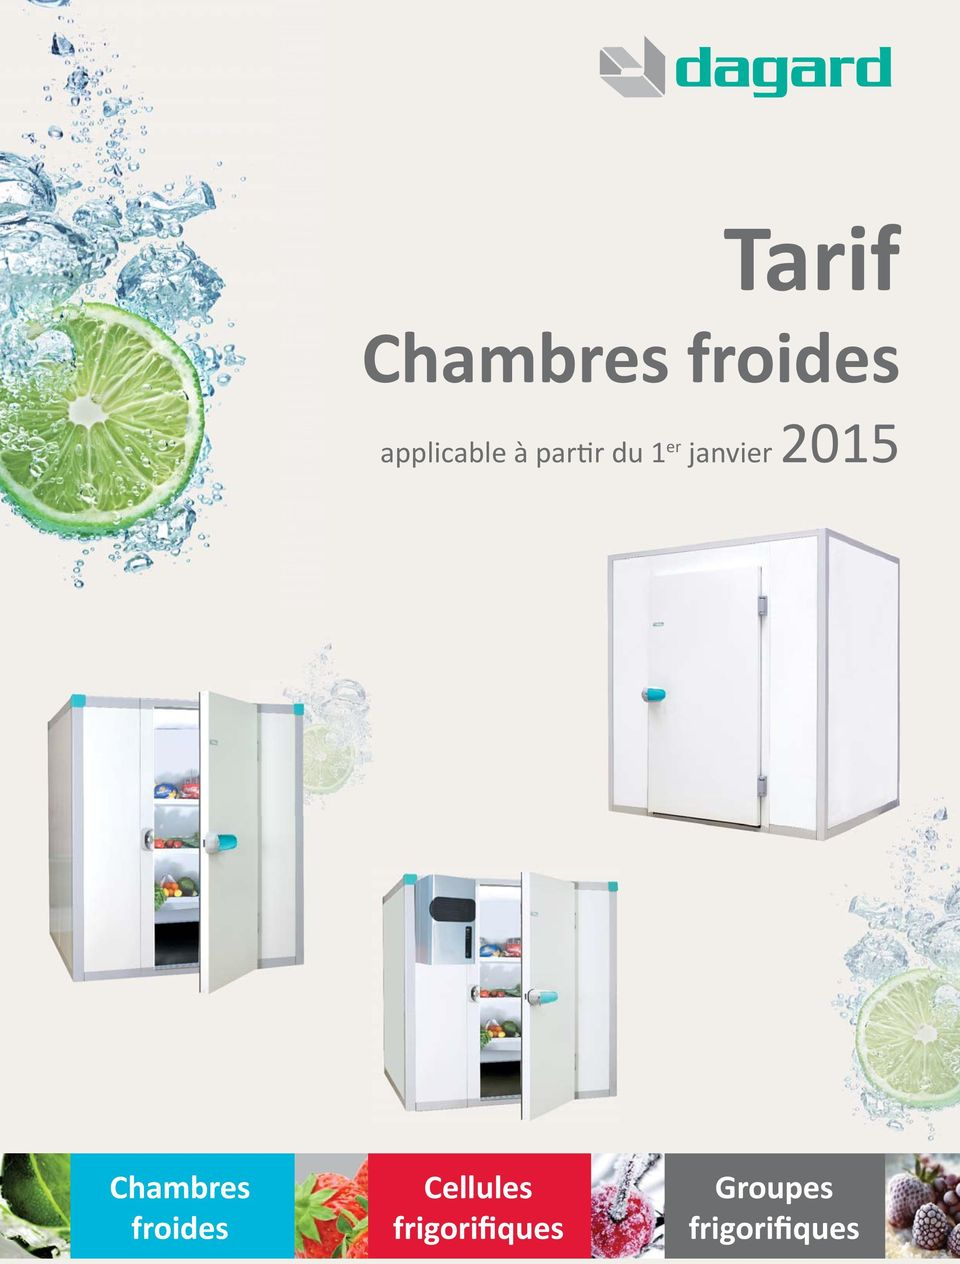 janvier 2015 Chambres froides